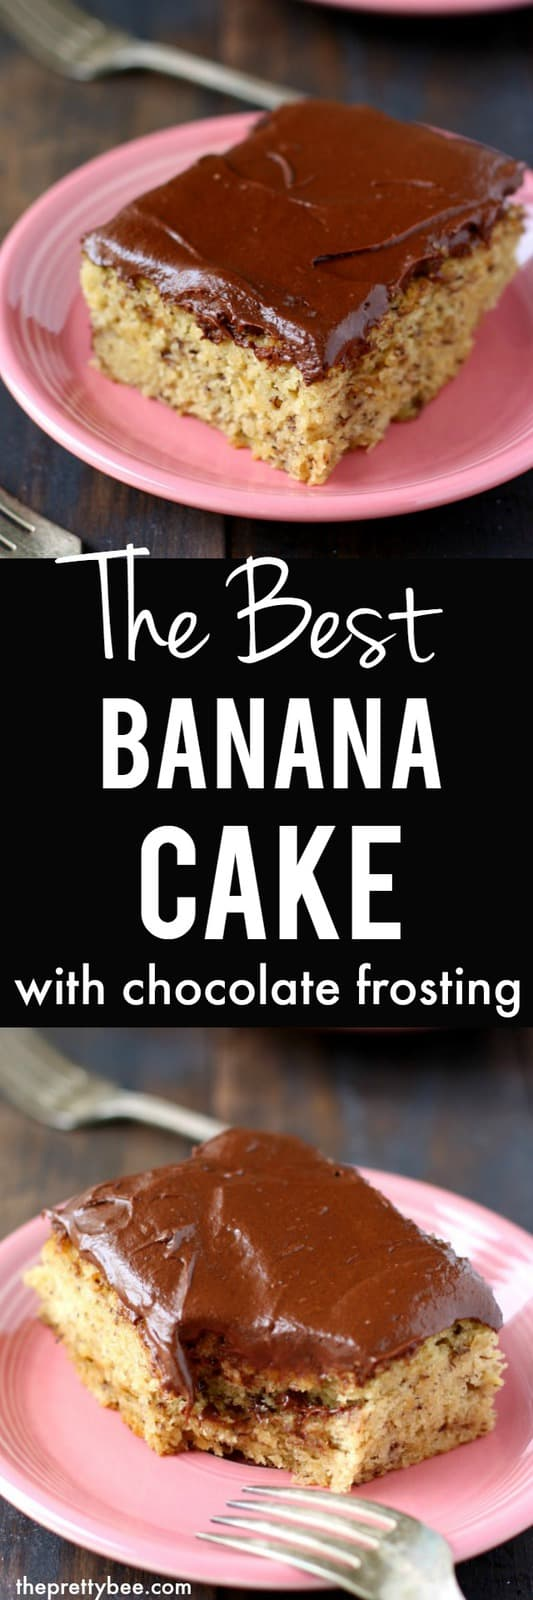 gluten free banana cake with decadent chocolate buttercream